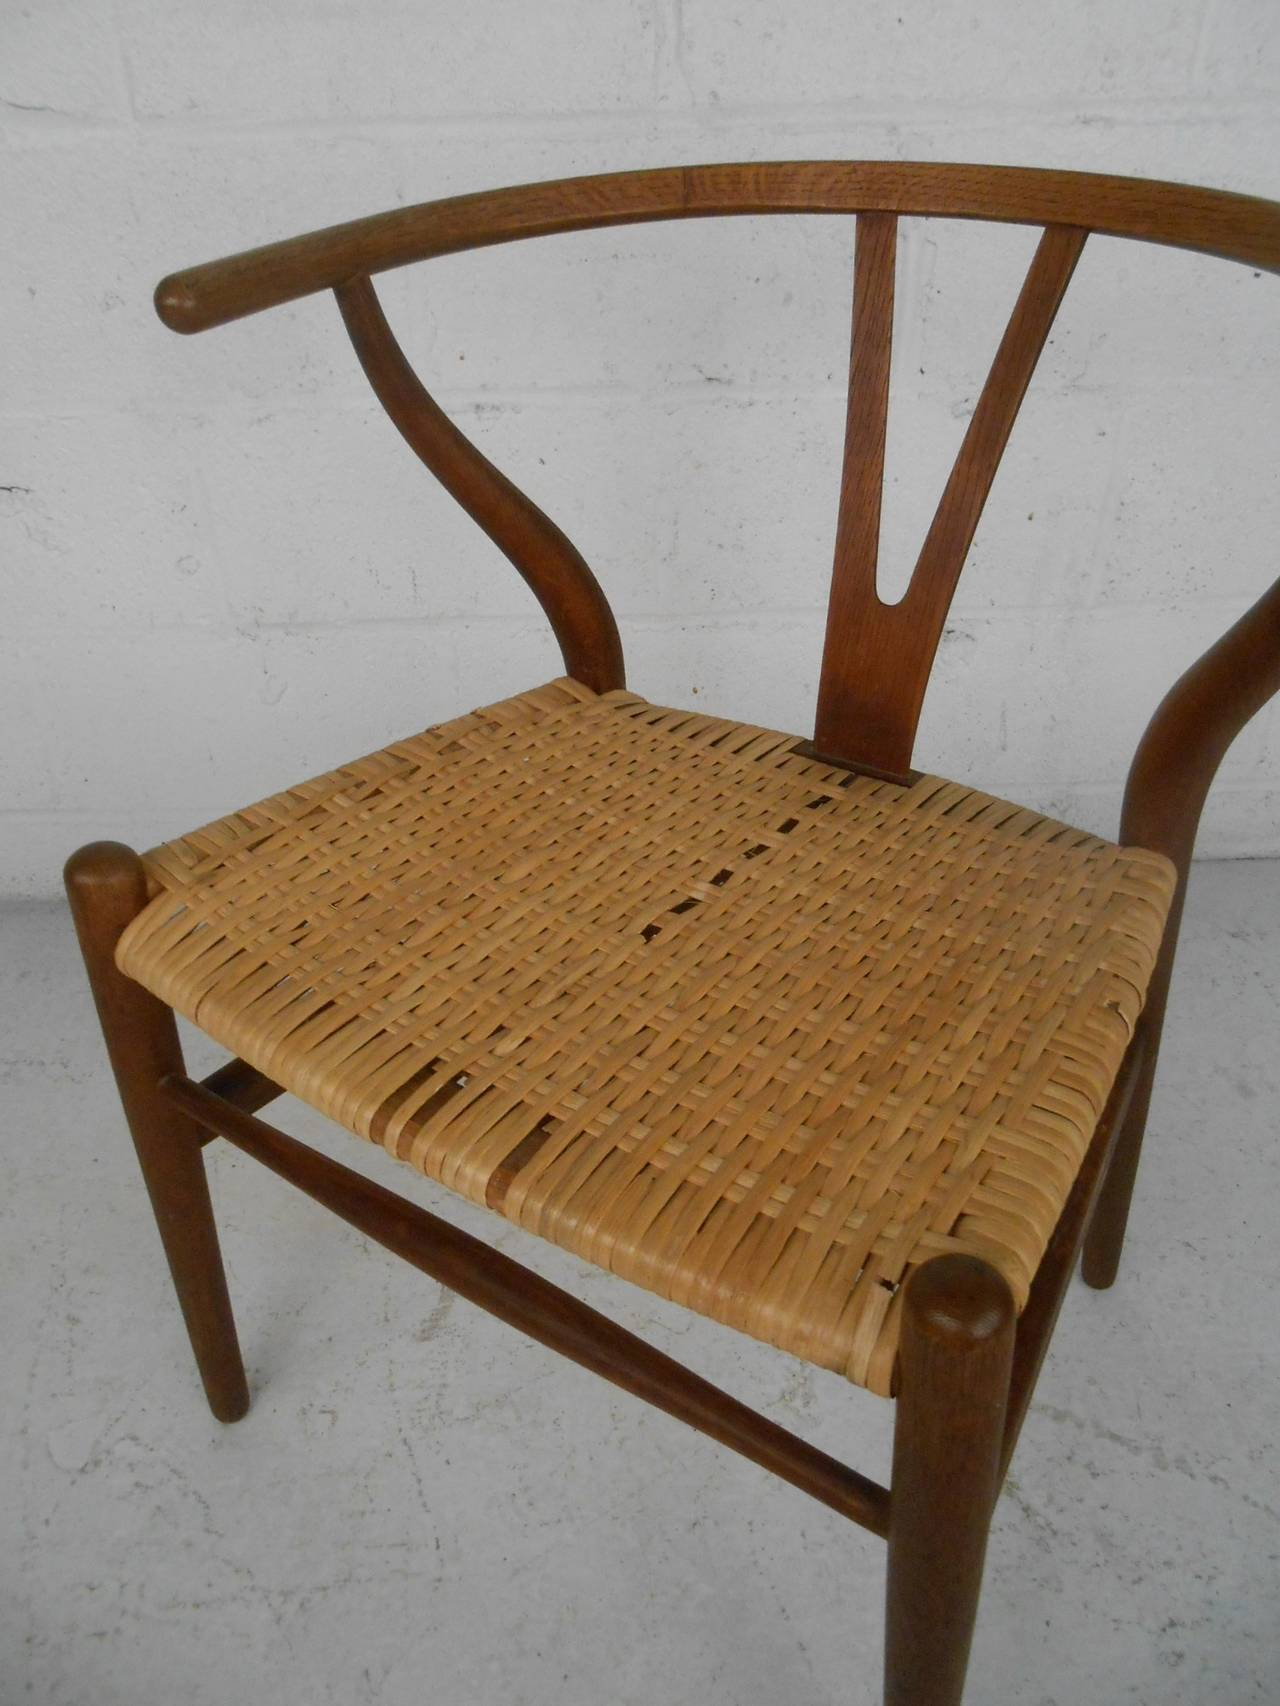 Hans Wegner Wishbone Chair For Sale at 1stdibs